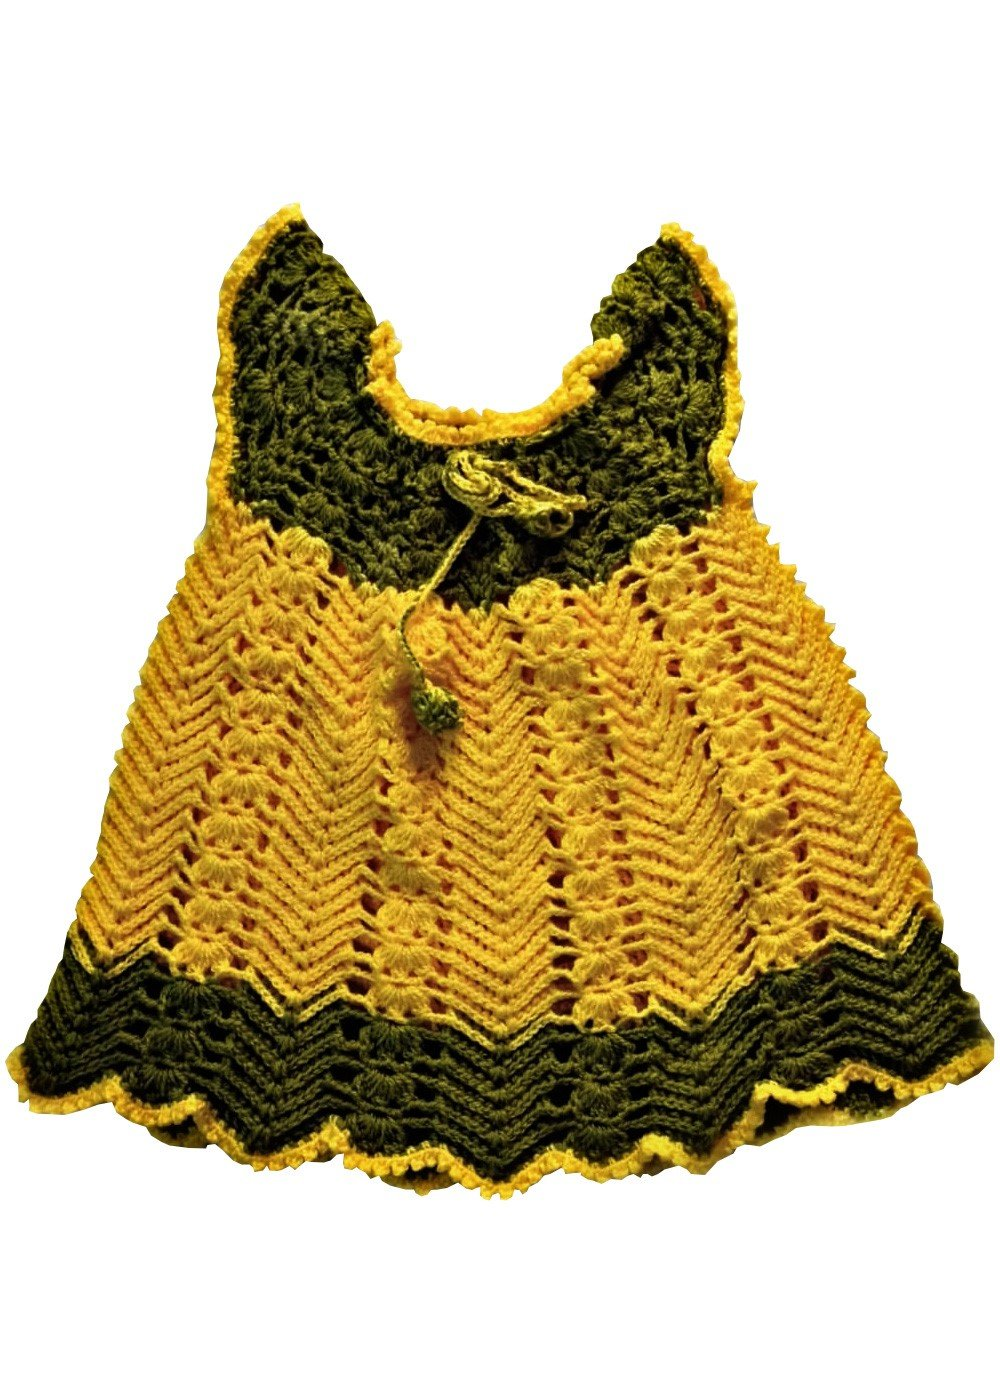 Hand crocheted baby Girl dress